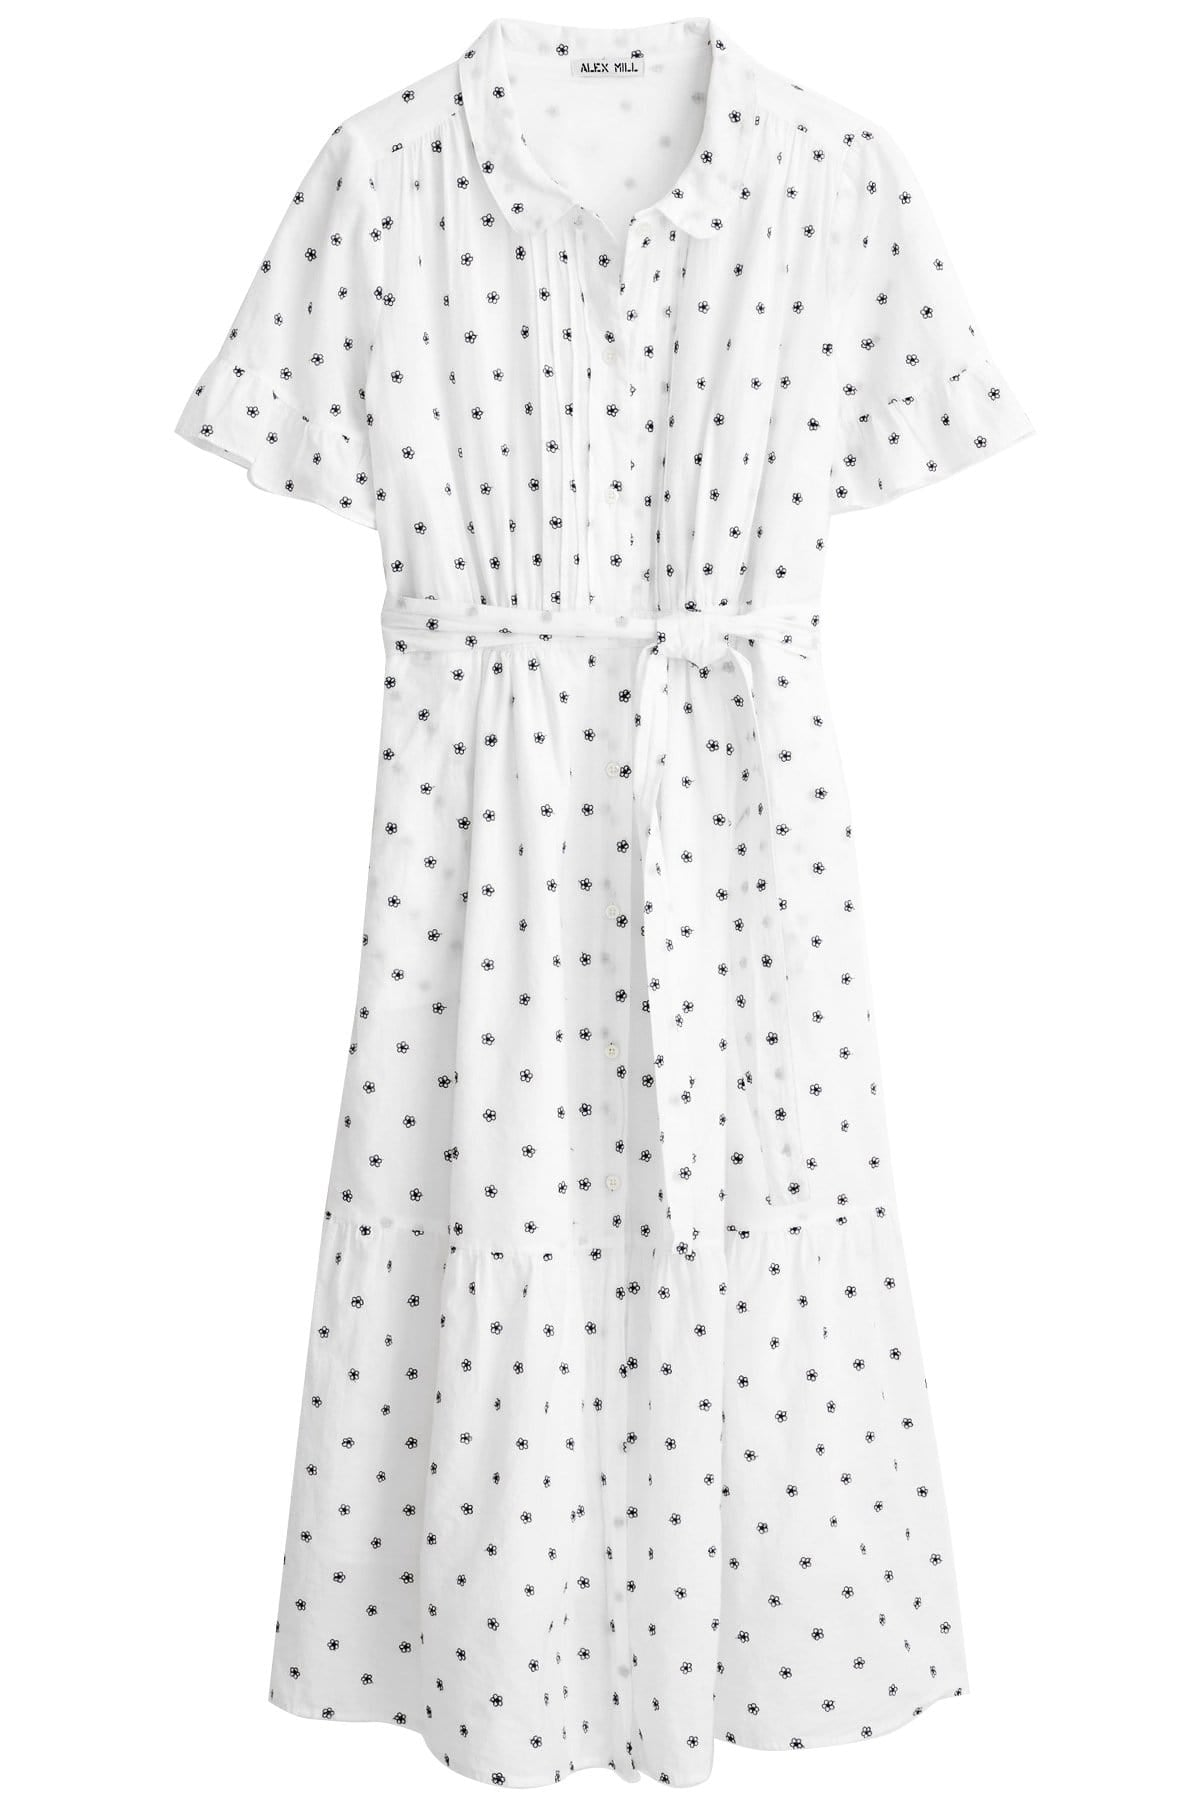 Cotton Embroidered Sheer Collared Dress With a Sash